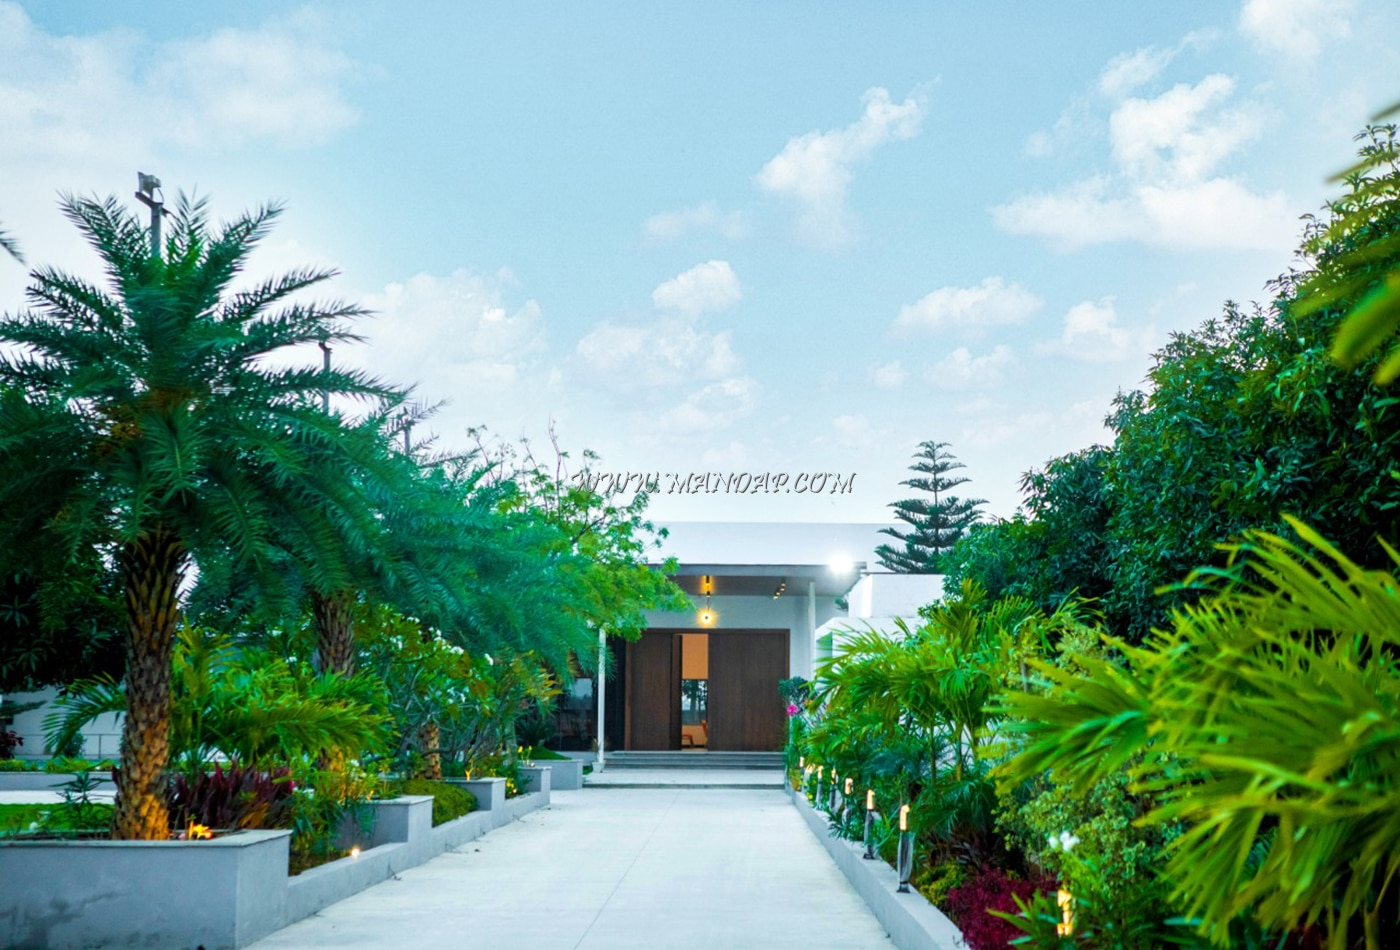 Find the availability of the Sree Lalitha Lawn Convention Gardania in Keesara, Hyderabad and avail special offers